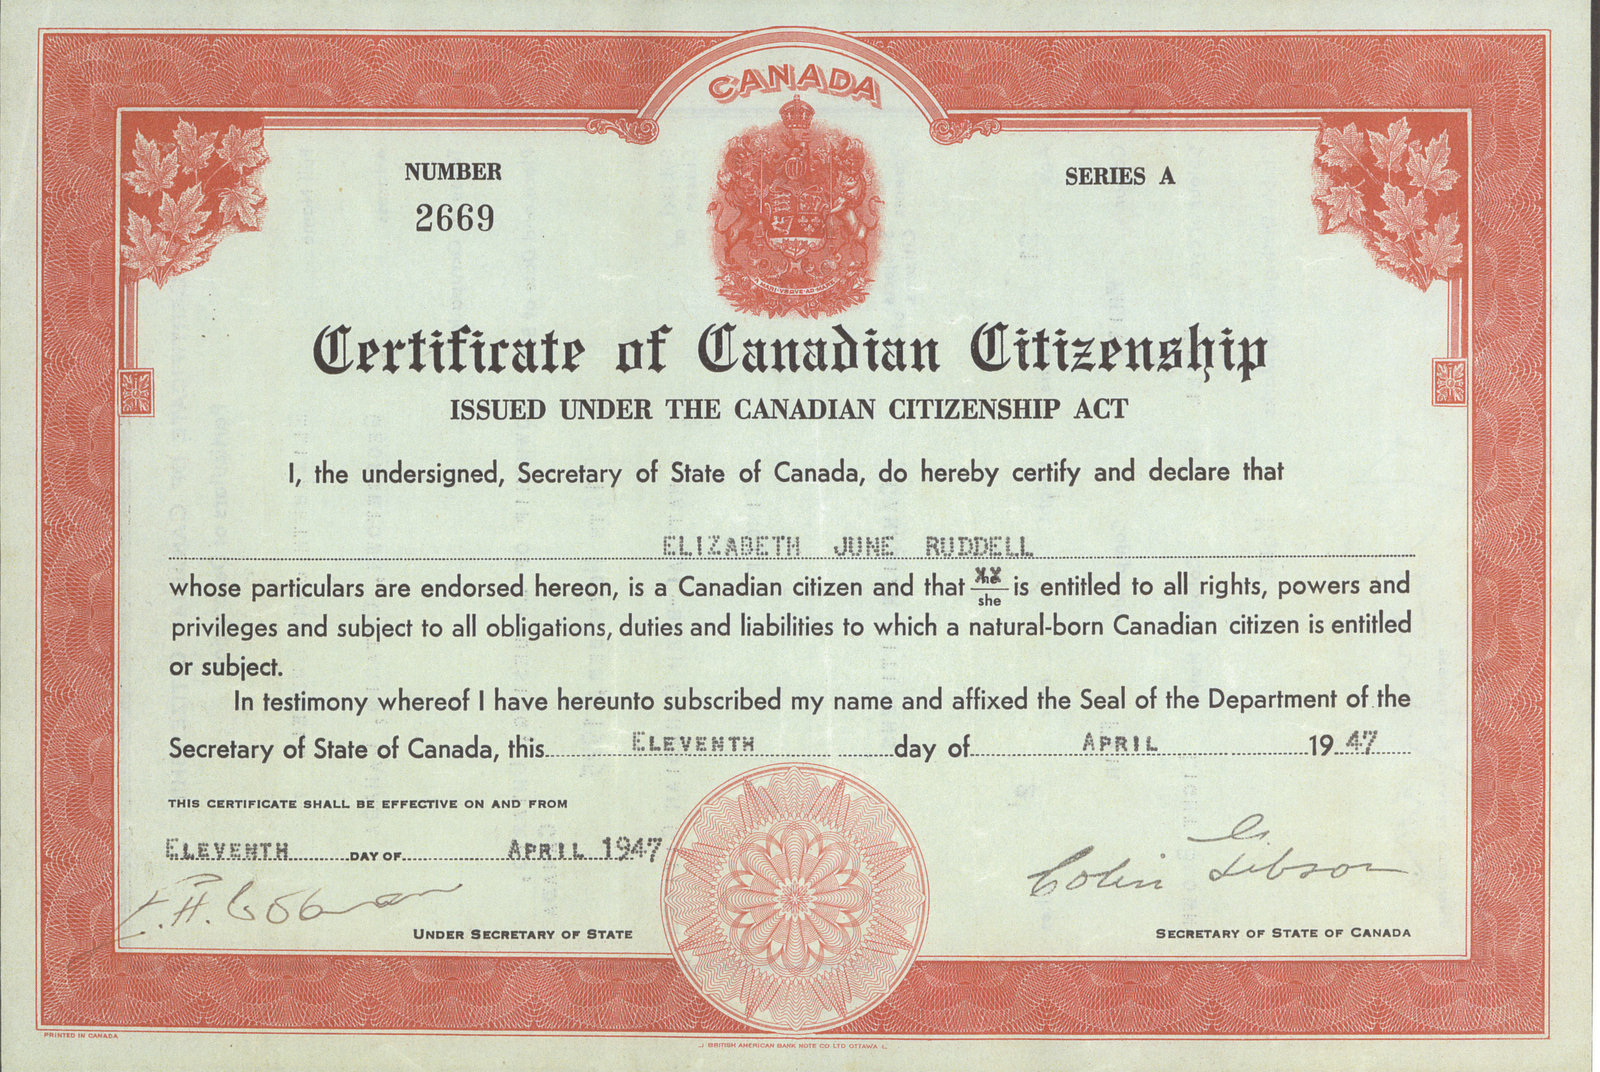 Cdn citizenship certificate ruddell trafalgar township cdn citizenship certificate ruddell trafalgar township historical society digital collections xflitez Image collections